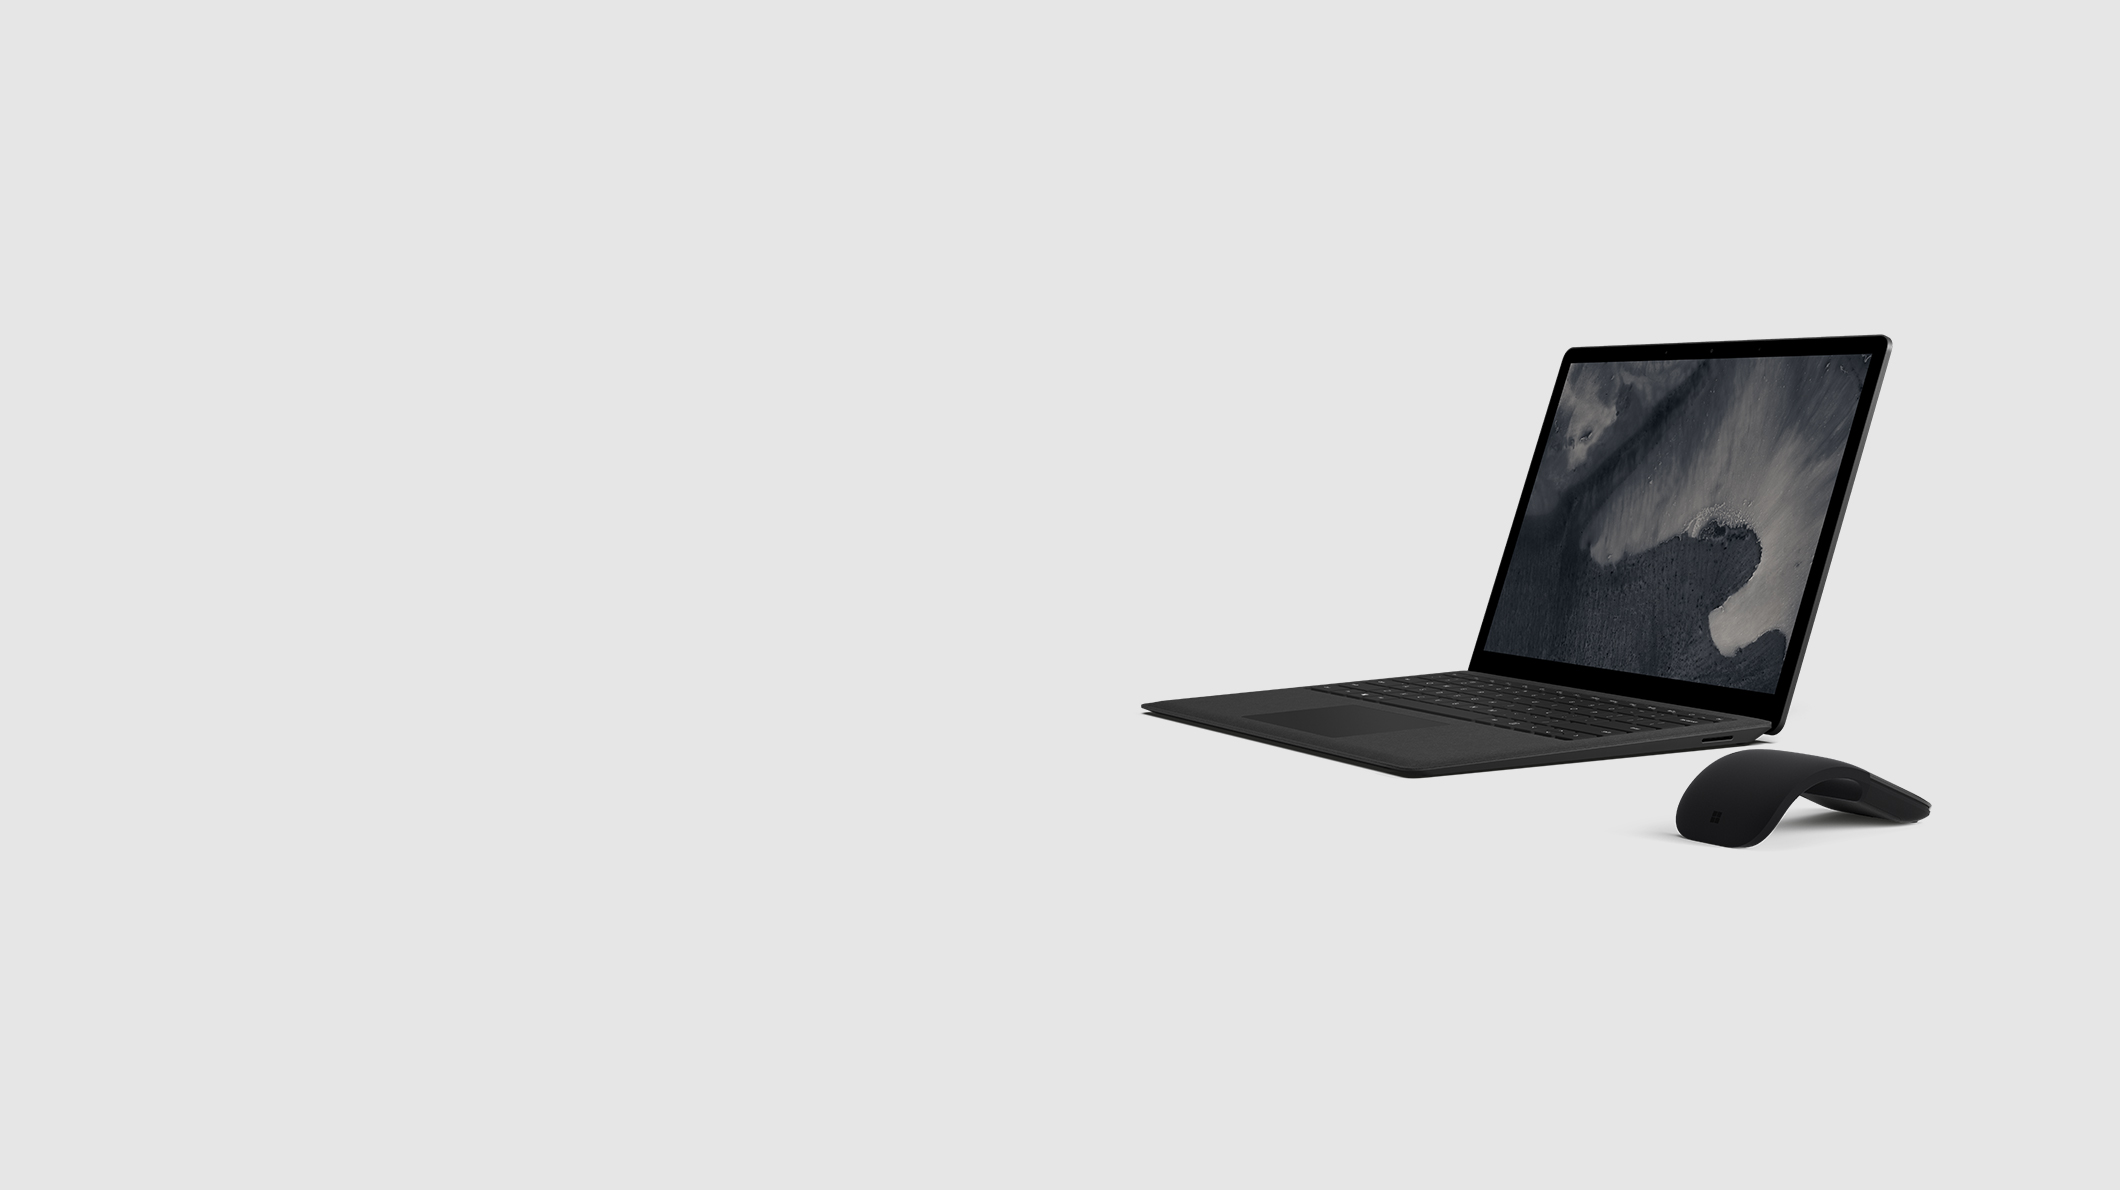 Surface Laptop 2 + Surface Arc Mouse in Schwarz